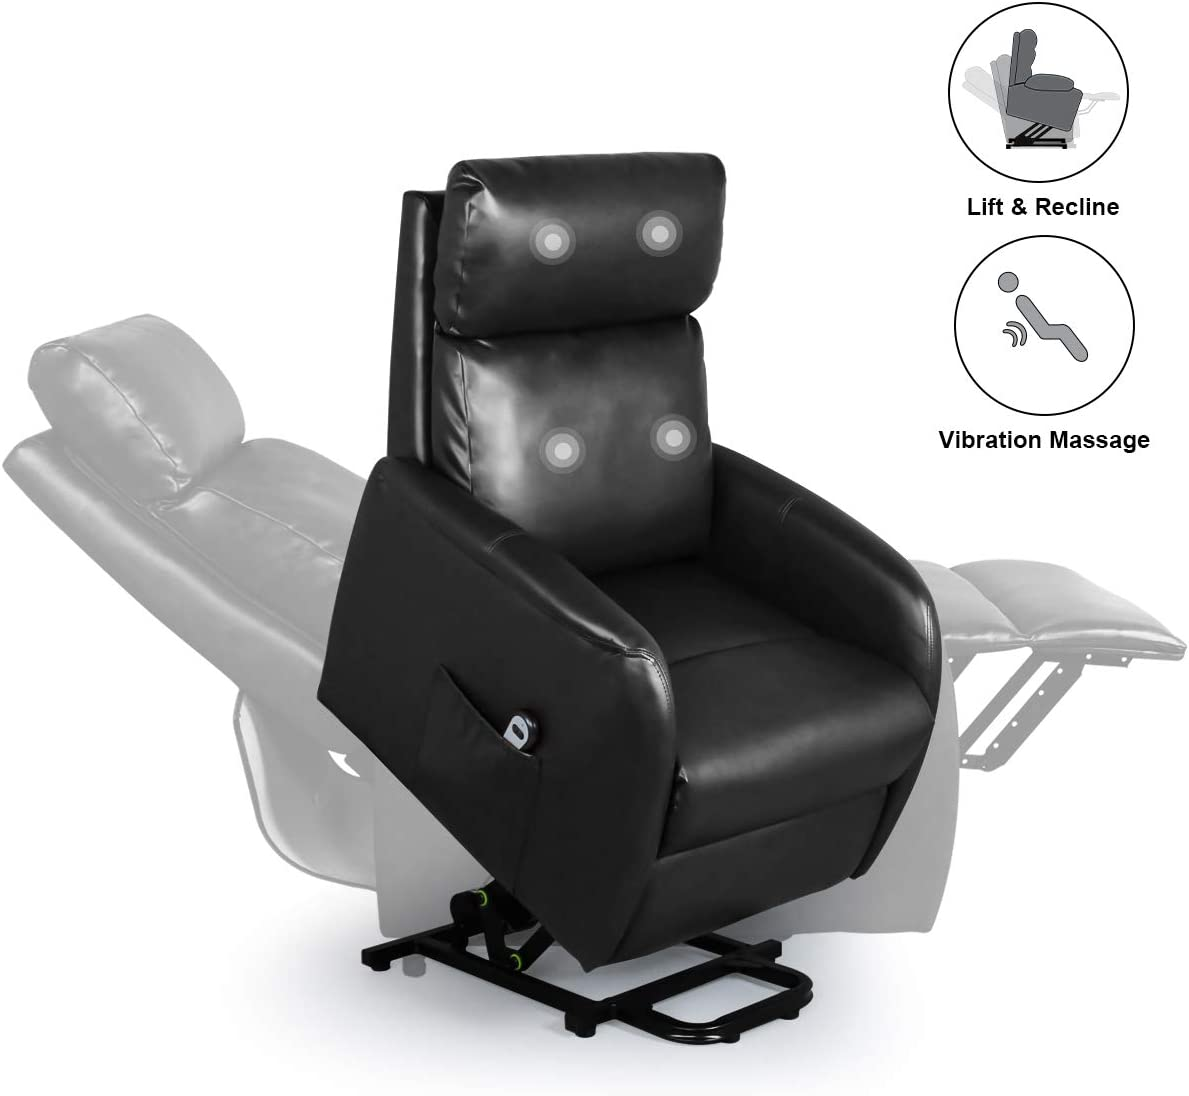 Home Power Modern Electric Lift Chair for Elderly, Faux Leather Massage Recliner with Remote, Leisure Lounge w Side Pocket, Living Room Office Chairs Black